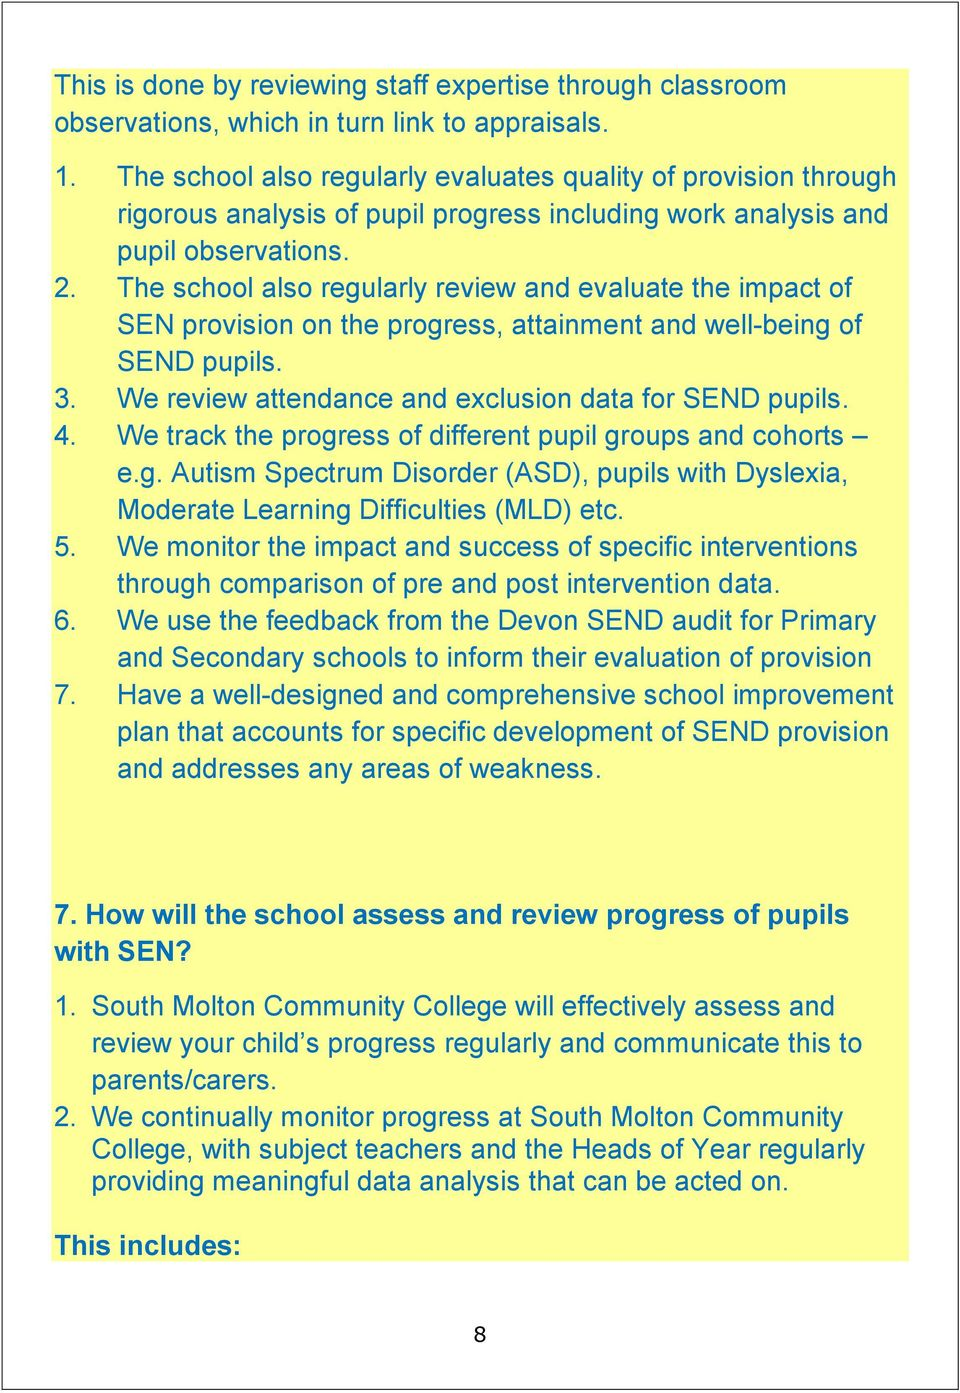 The school also regularly review and evaluate the impact of SEN provision on the progress, attainment and well-being of SEND pupils. 3. We review attendance and exclusion data for SEND pupils. 4.